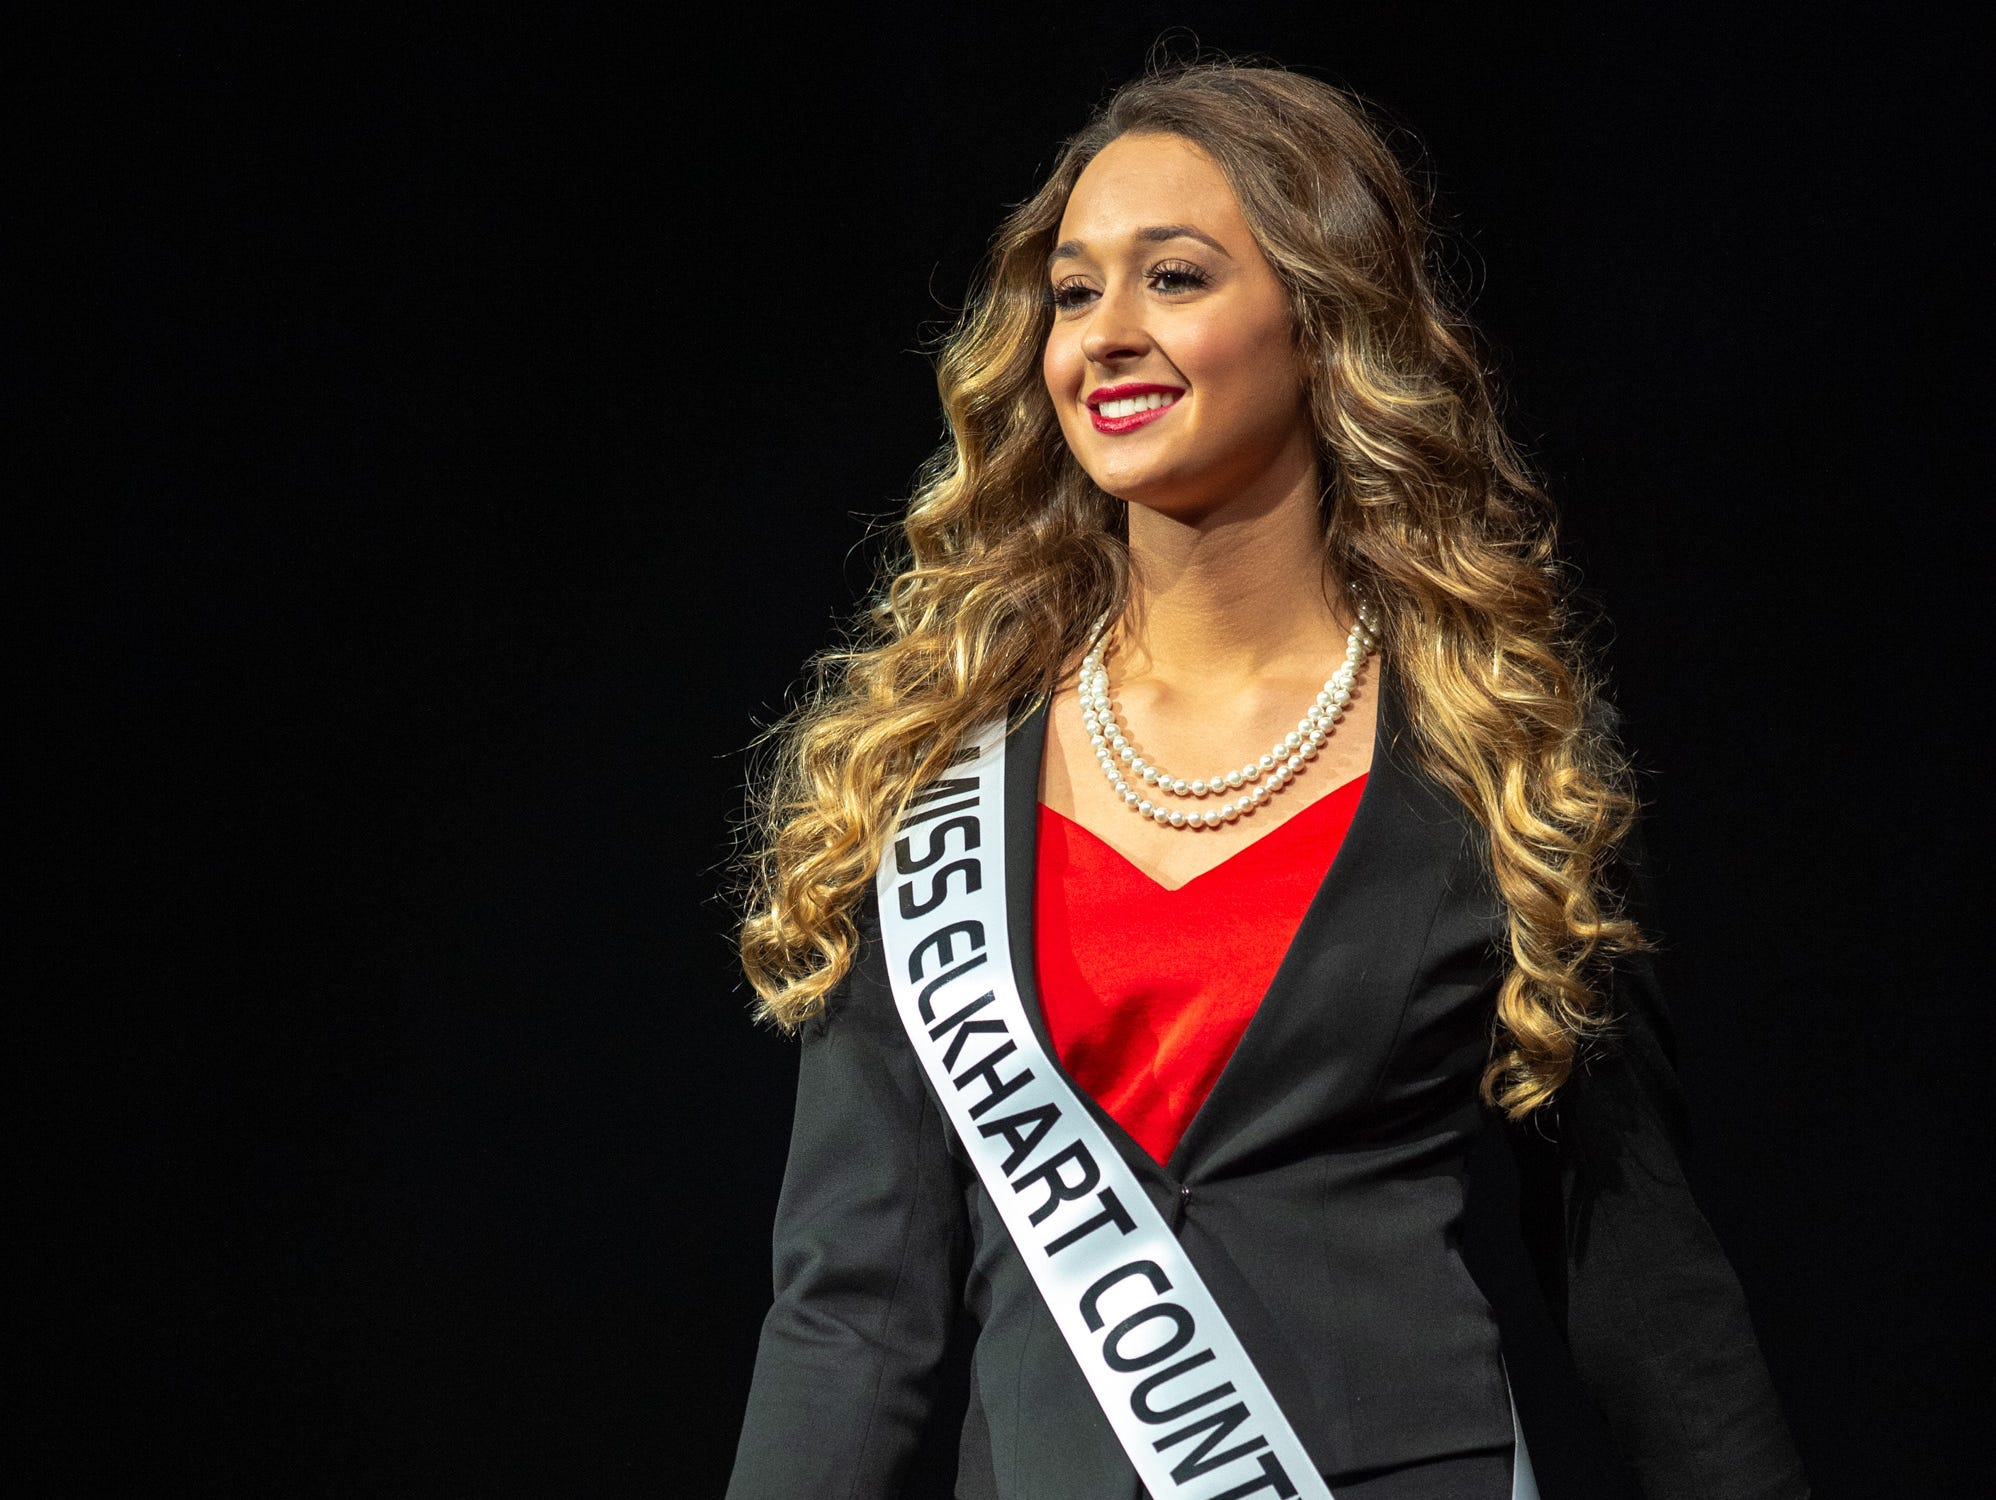 Miss Elkhart County, Emily Yoder, during the 61st Indiana State Fair Queen Pageant at the Indiana State Fairgrounds in Indianapolis on Sunday, Jan. 6, 2019.